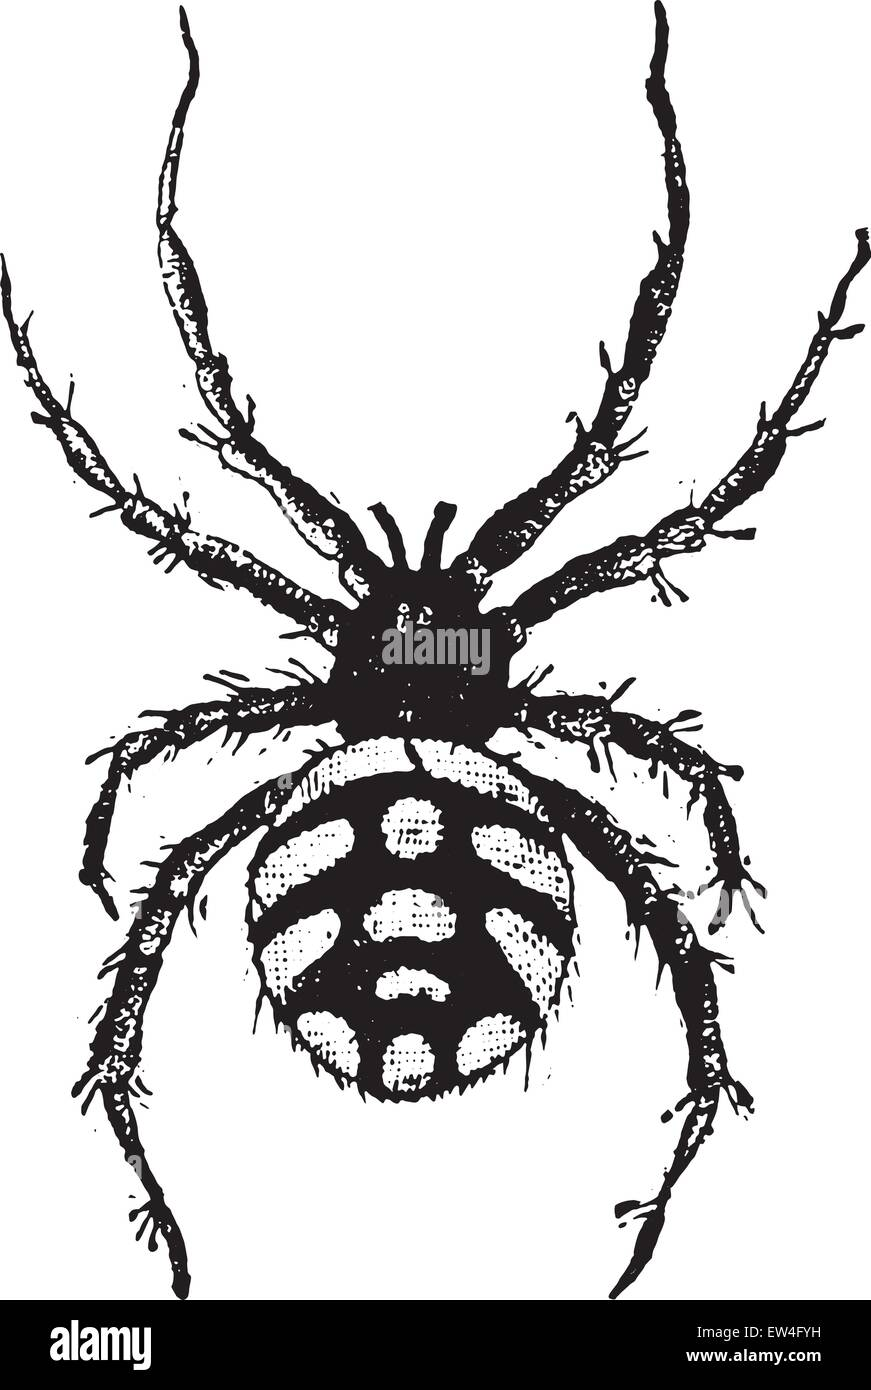 Theridion malmignatte, vintage engraved illustration. Natural History of Animals, 1880. - Stock Image